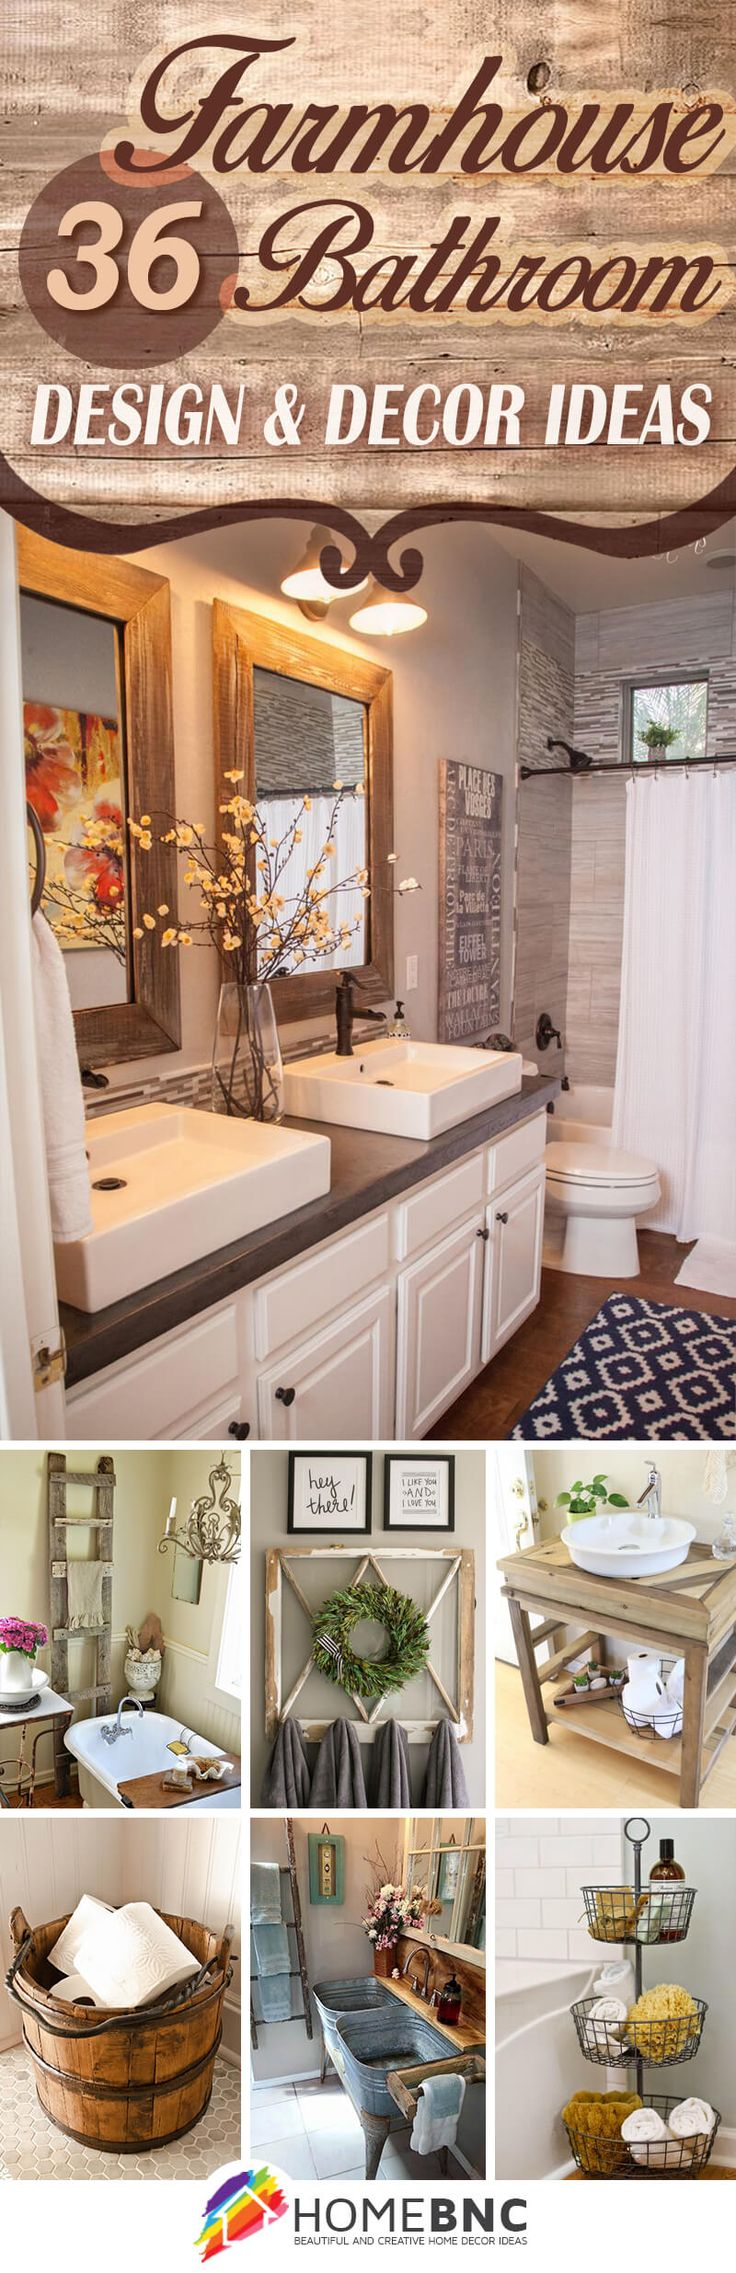 Bathroom Decor Ideas Rustic best 25+ rustic bathrooms ideas on pinterest | country bathrooms